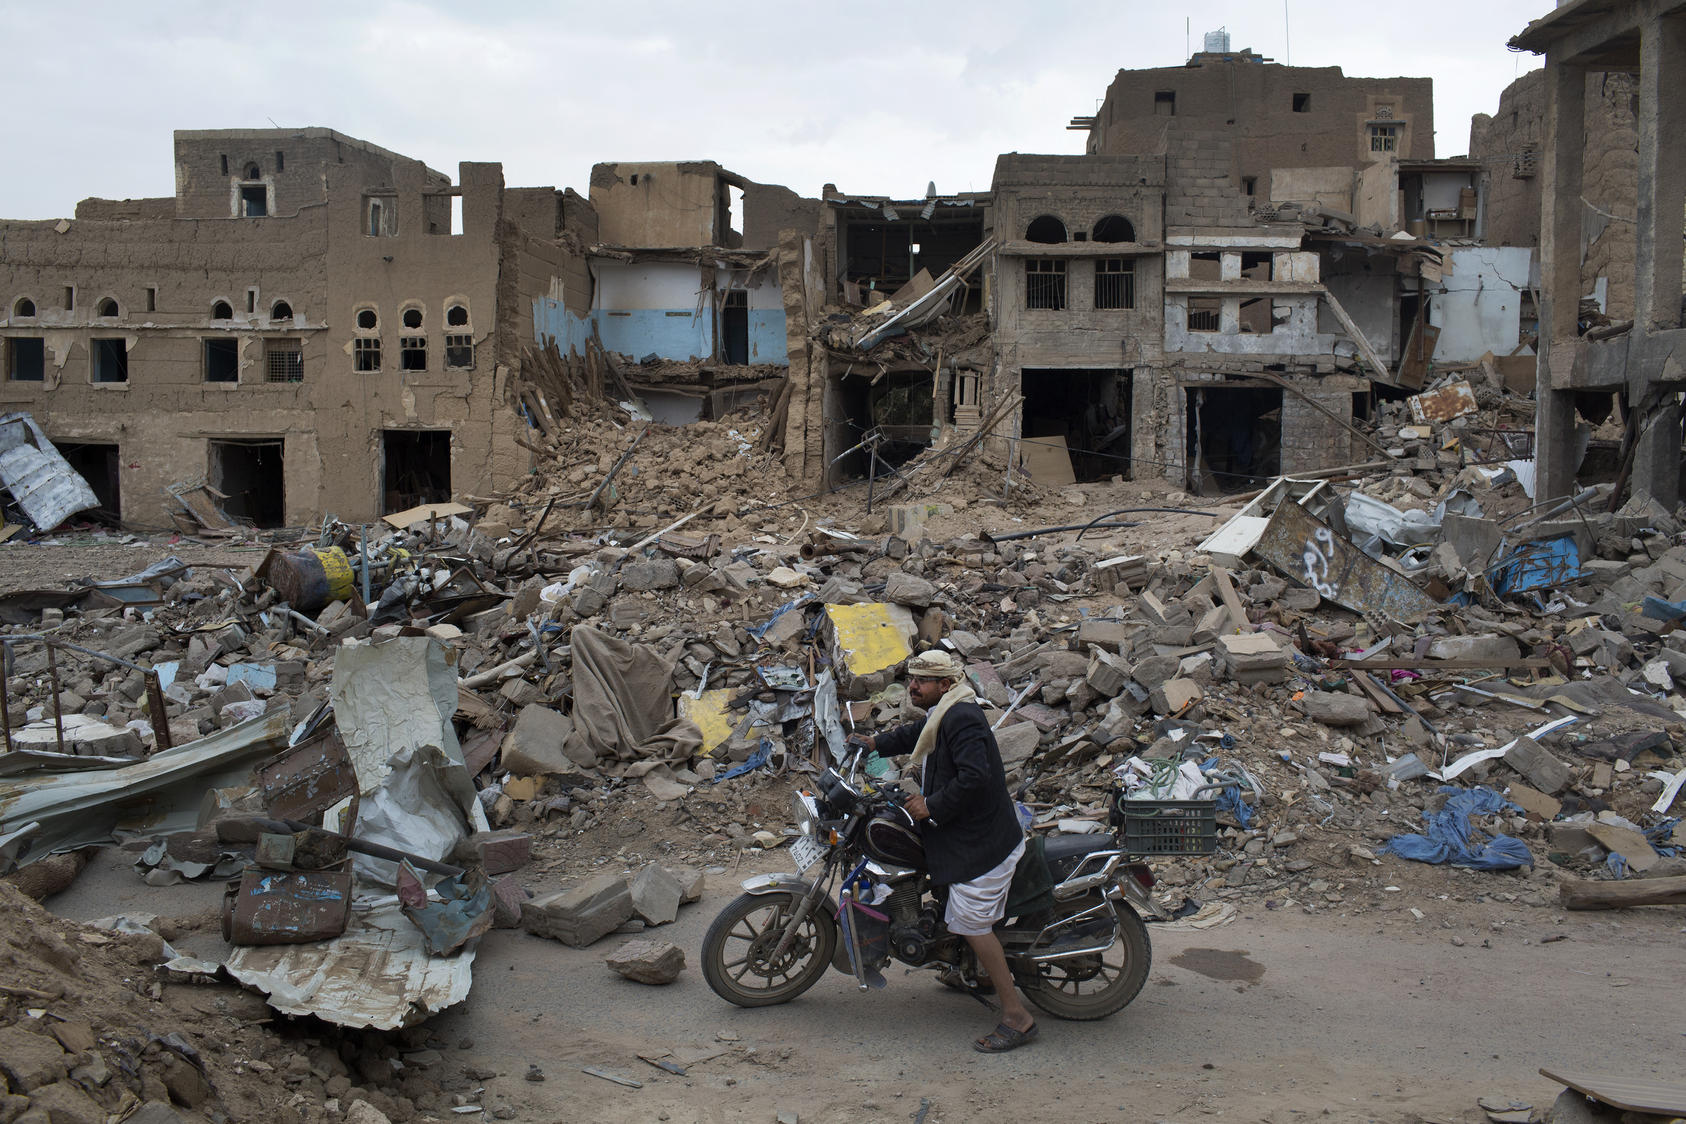 The northern city of Saada, a stronghold of the Houthi rebel militia, damaged from intense bombardment by the Saudi led military coalition, in Yemen, Sept. 7, 2015. While some high-level terrorists remain at Guantanamo Bay, there are also many low-level detainees who remain only because they are from Yemen, which is in turmoil. (Tyler Hicks/The New York Times)